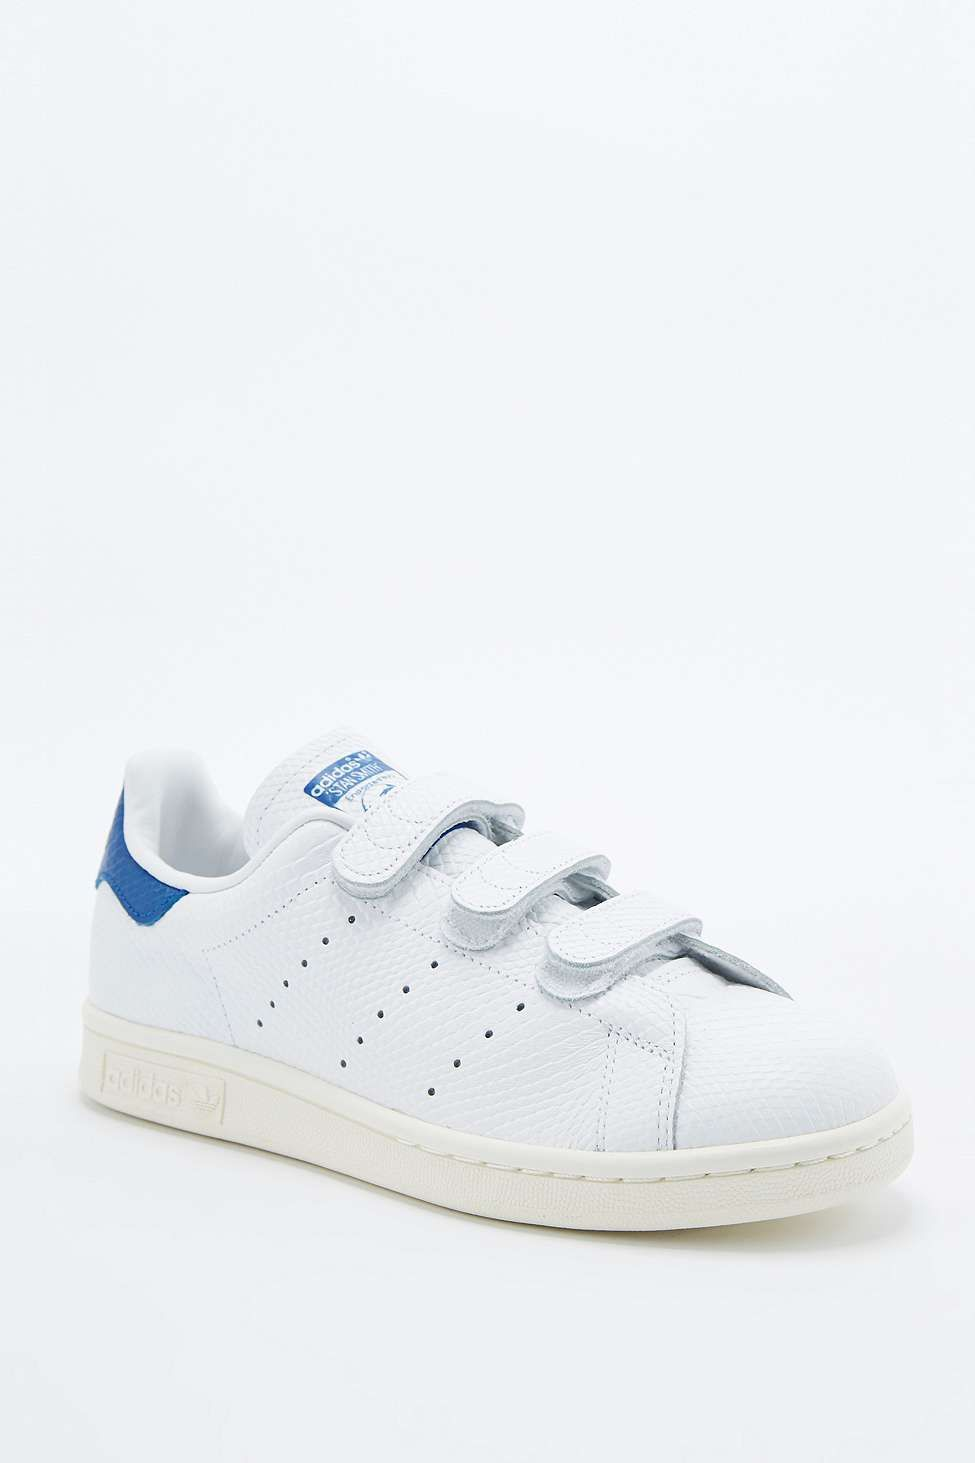 new arrival 450bb 5780f adidas Originals Stan Smith White   Blue Velcro Trainers